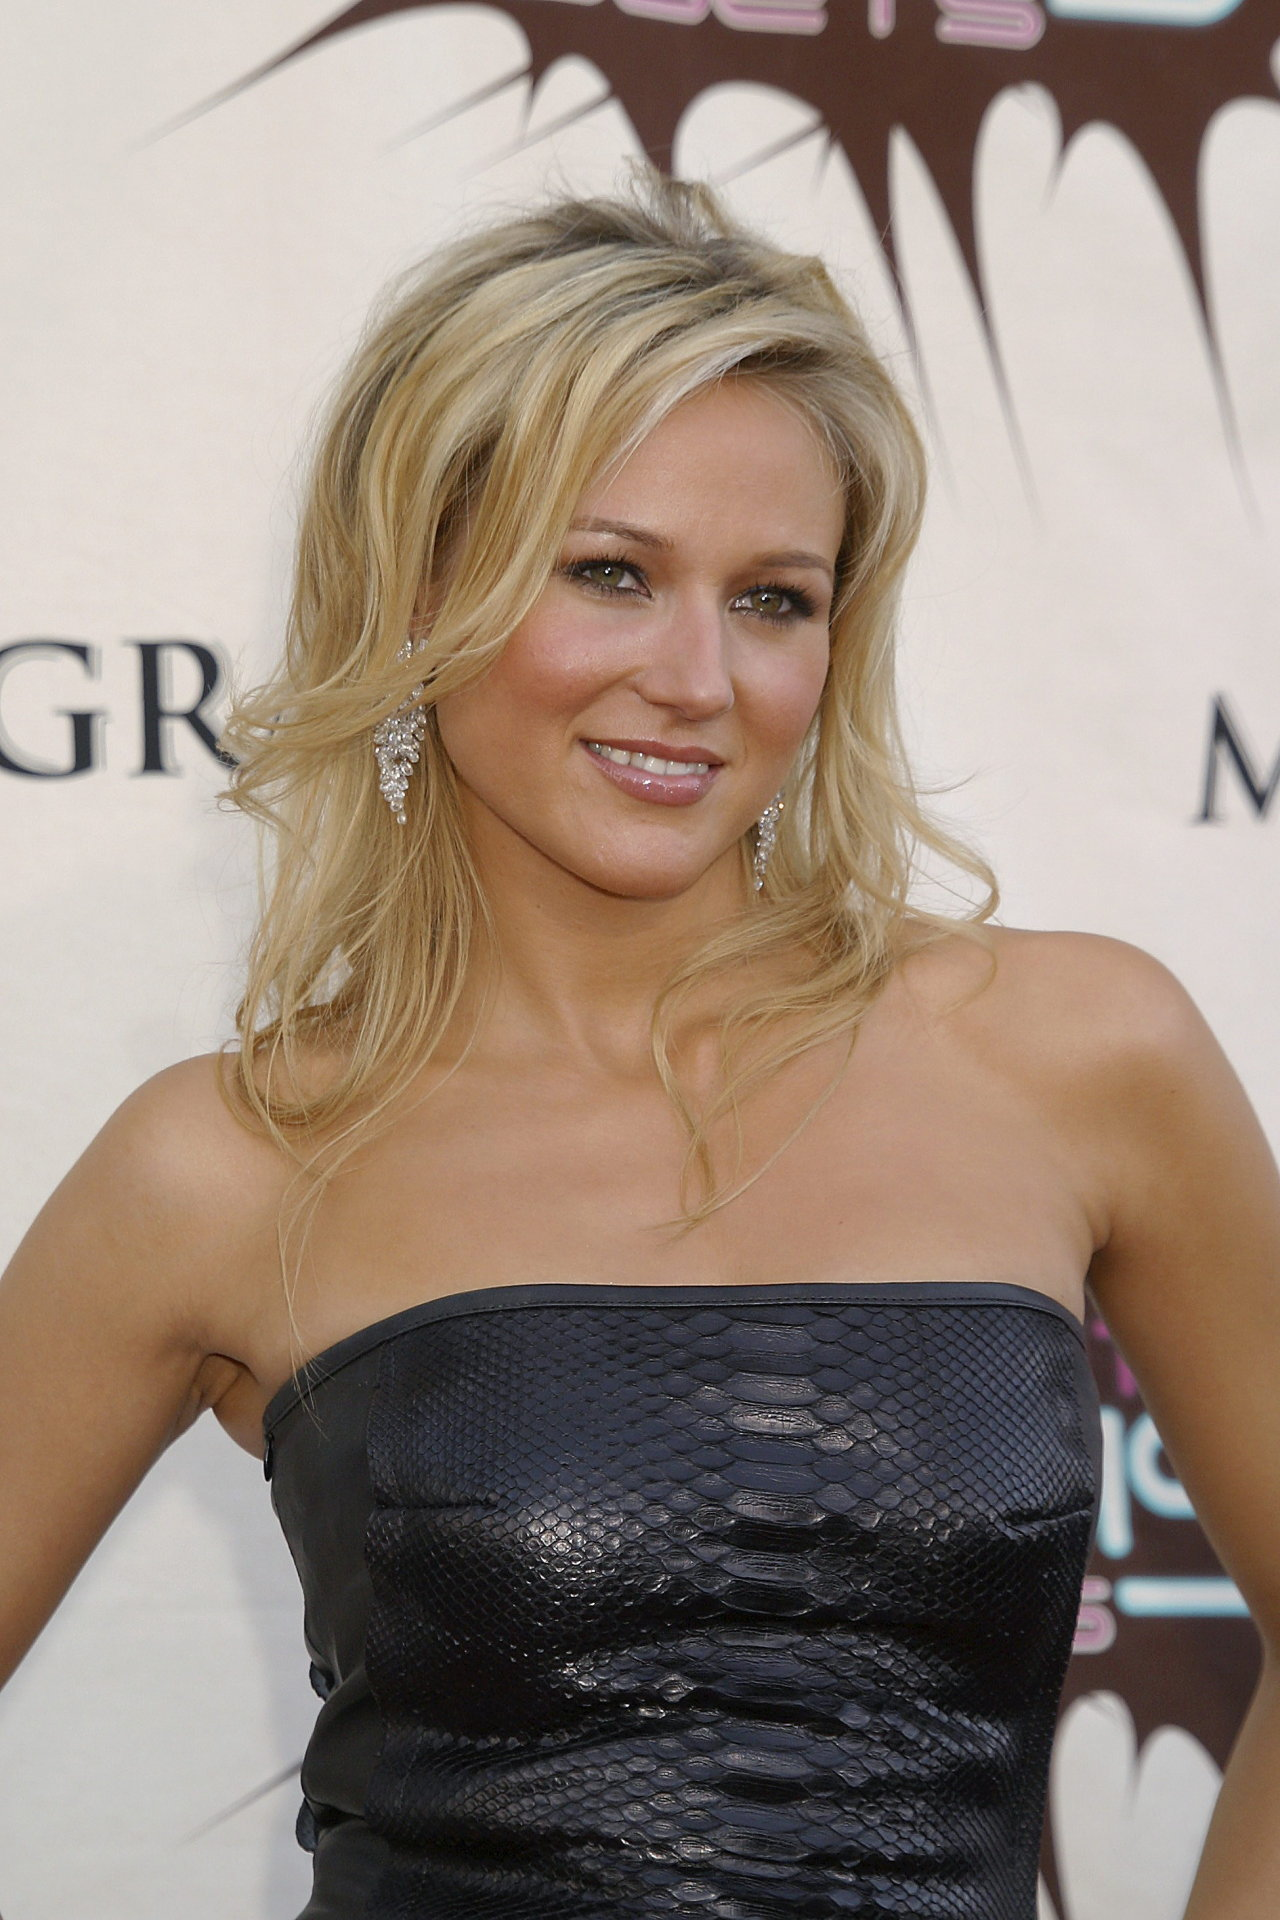 Jewel Kilcher - Images